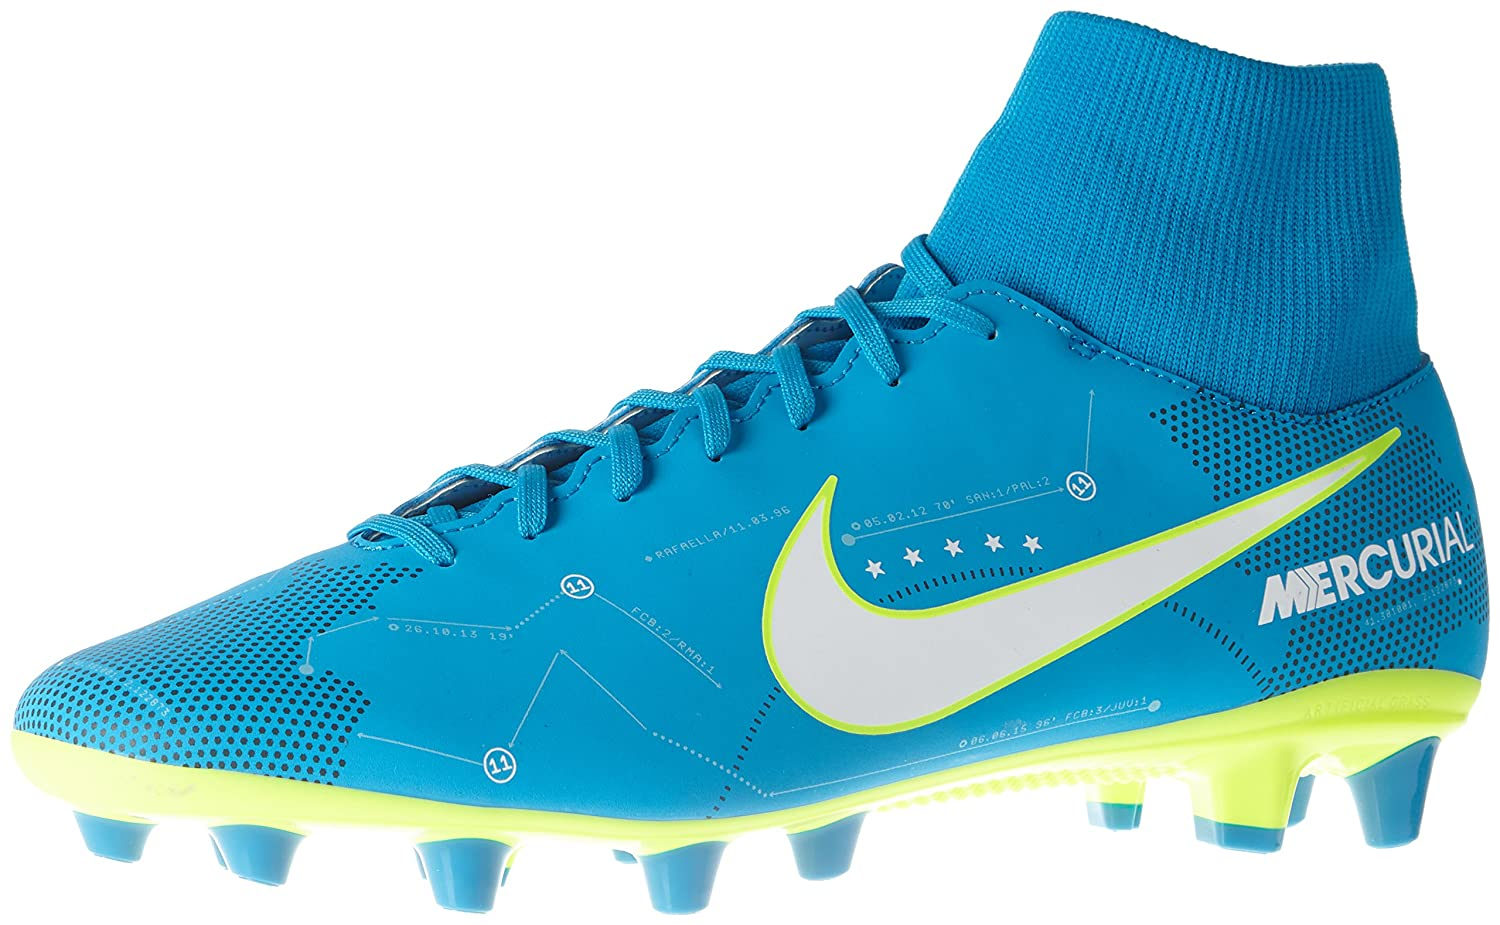 Nike Mercurial Vctry 6 DF NJR Agpro, Zapatillas de Fútbol Para Hombre 46 EU|Turquesa (Blue Orbit/White/Blue Orbit/Armory Navy/Volt/Volt)